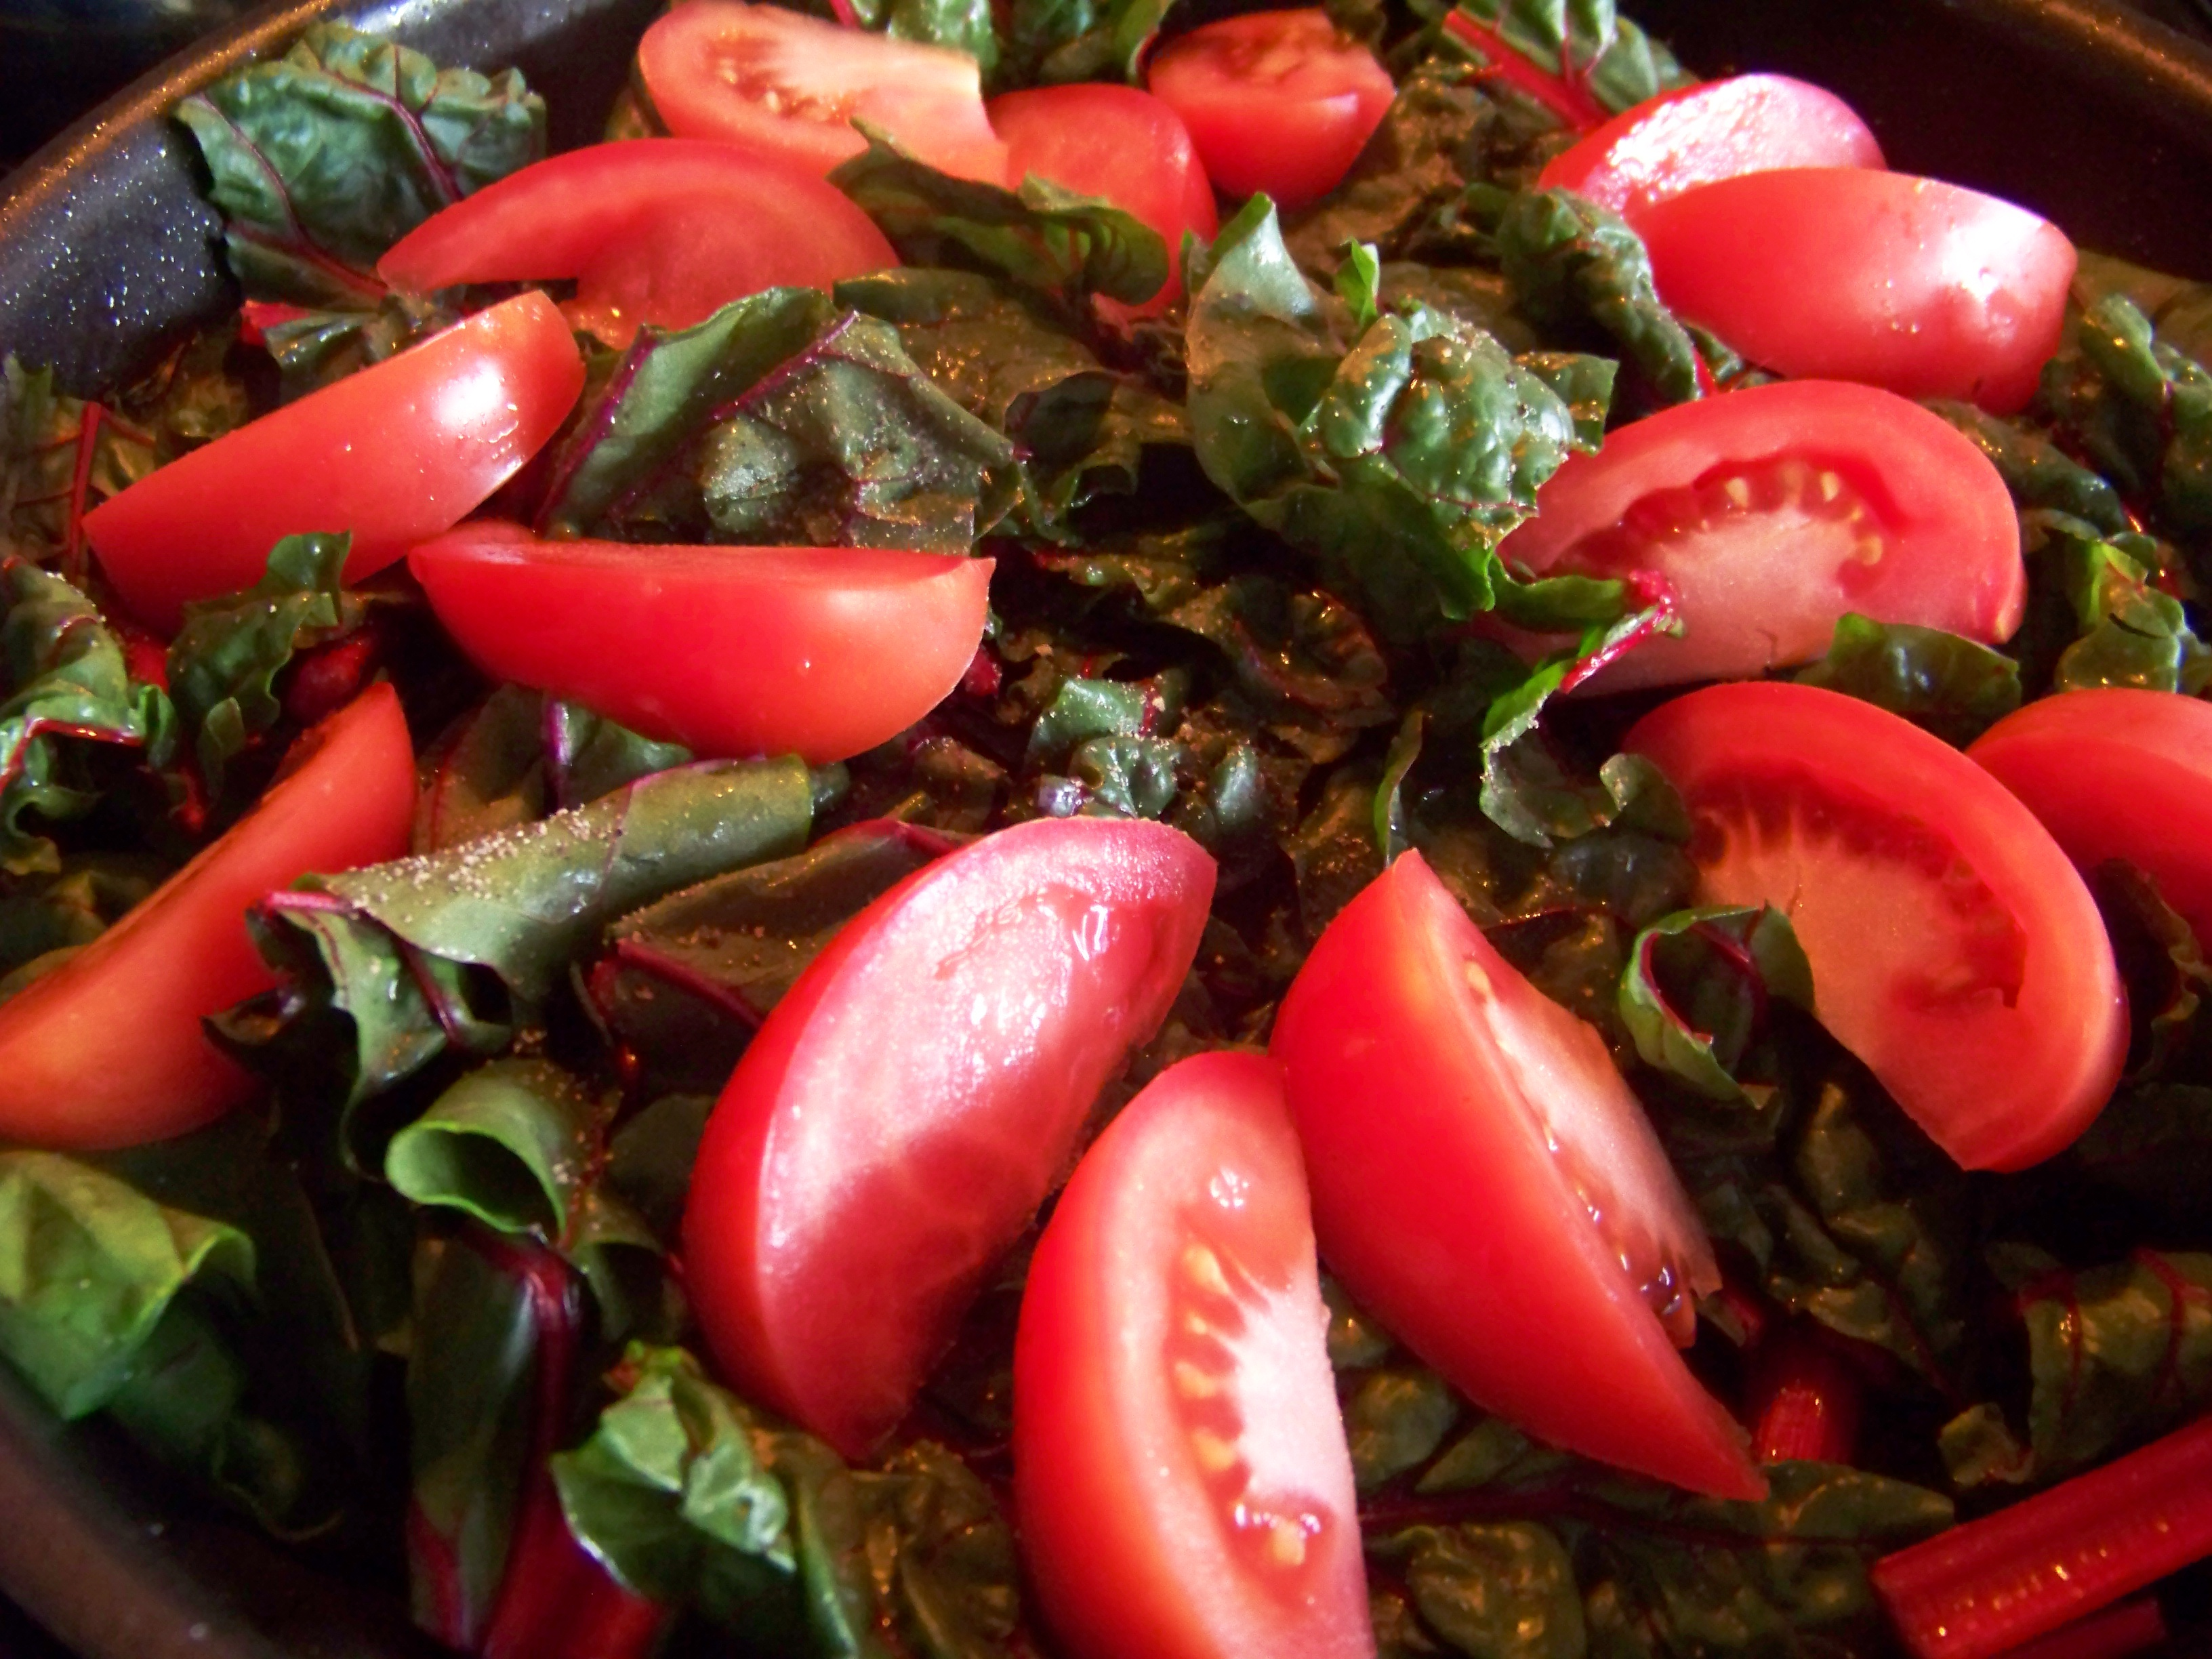 Baconized Swiss Chard